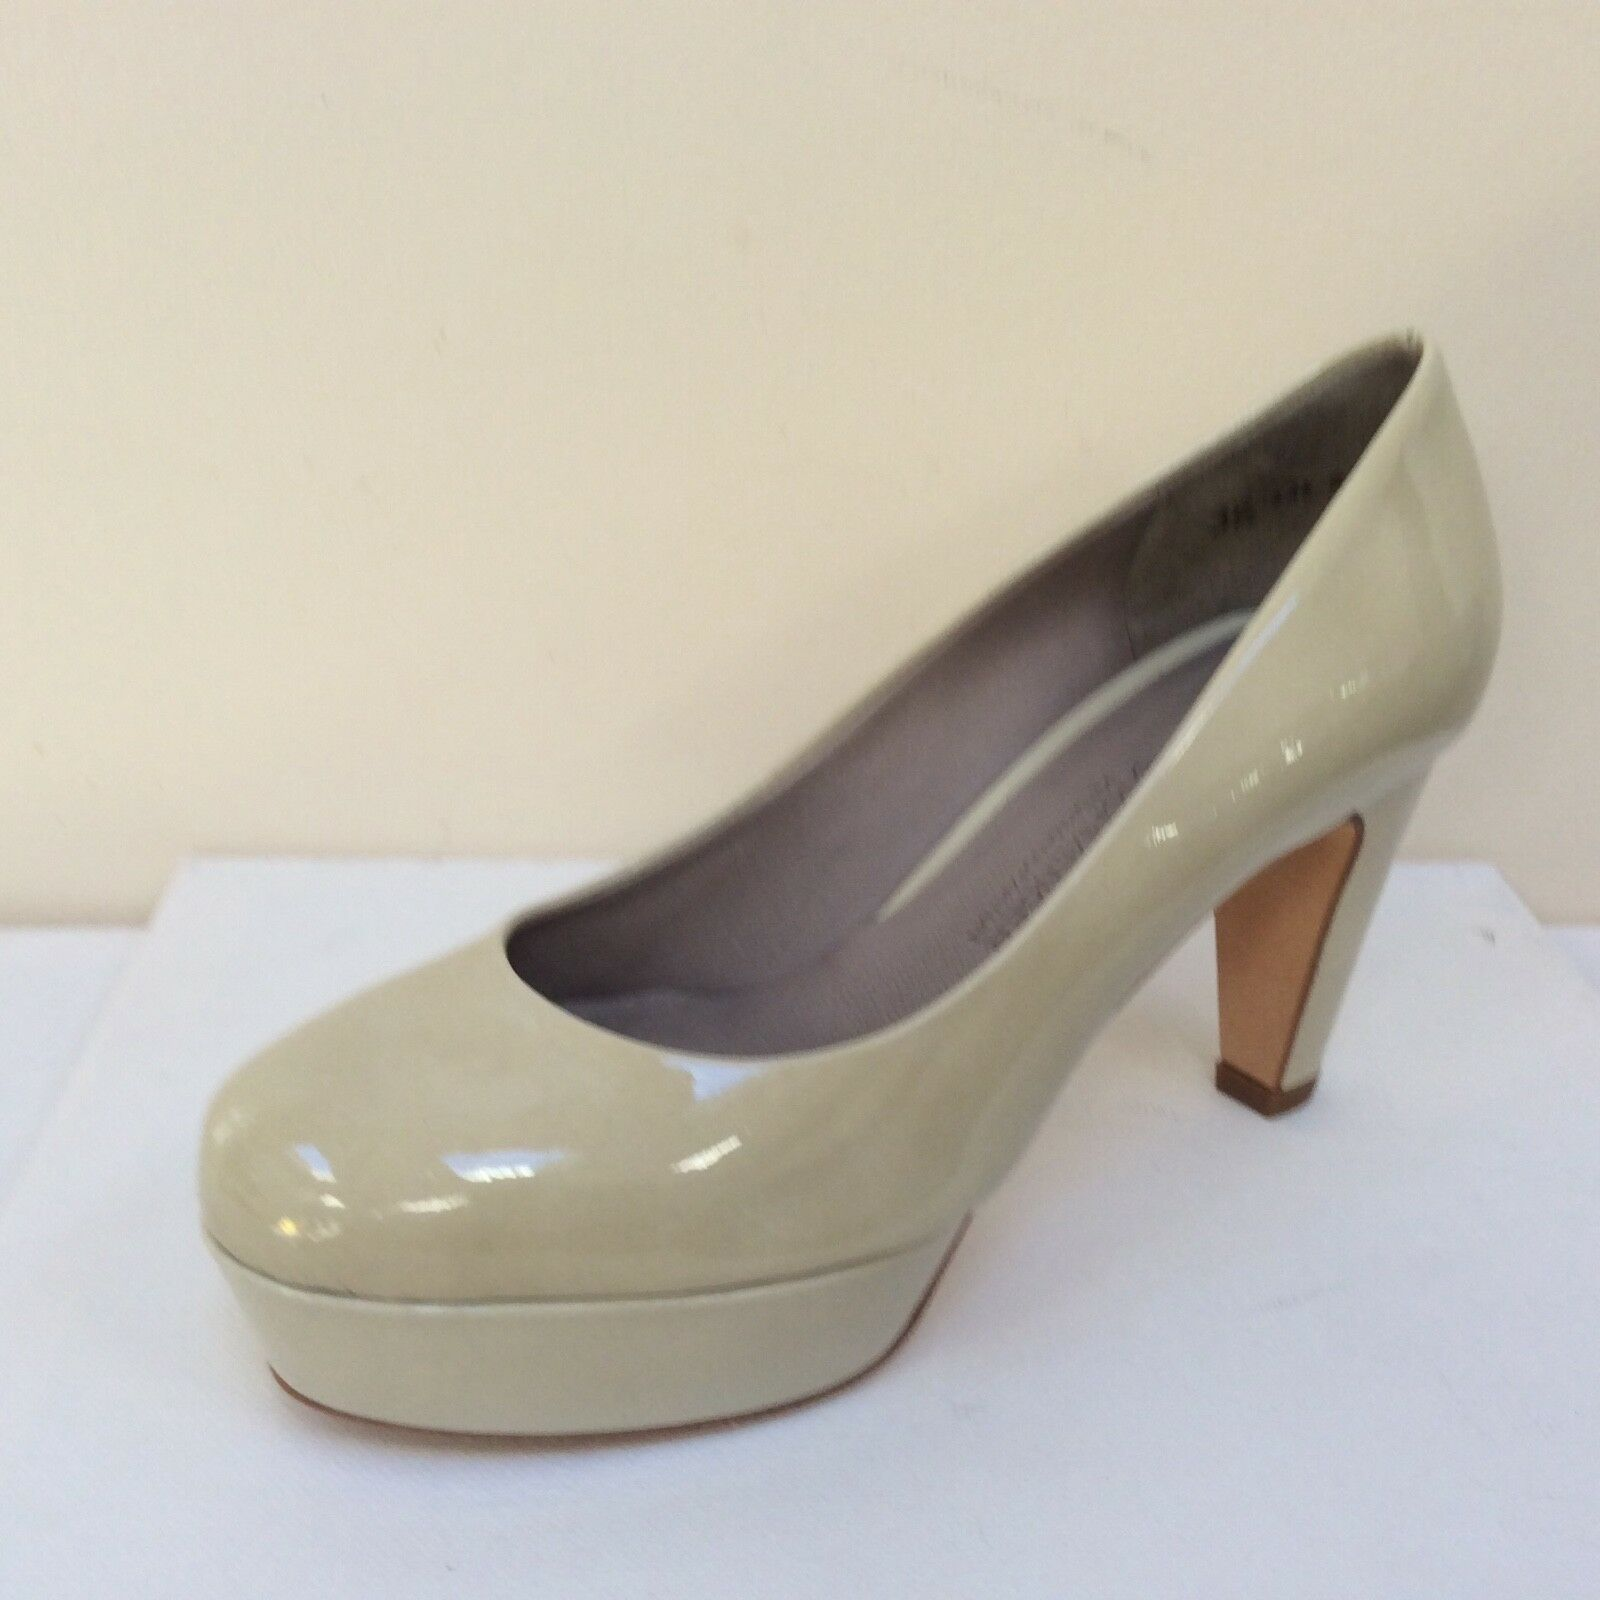 K&S Gil cream patent platform court shoes, UK 6/EU 39,     BNWB